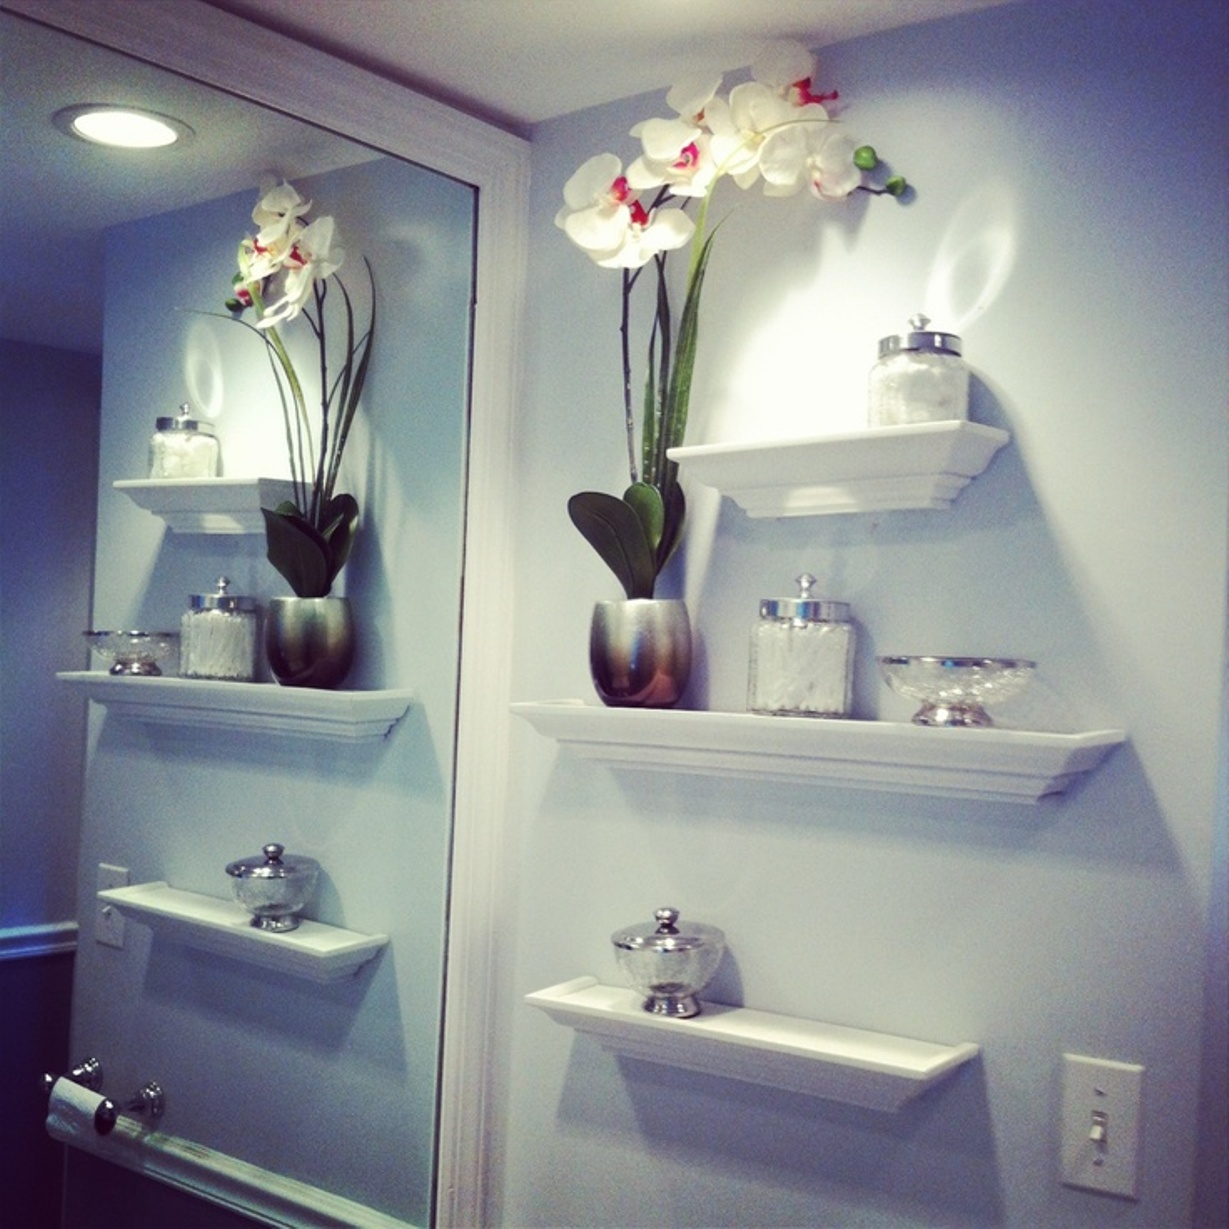 Astonishing Orchid Bathroom Wall Shelving Idea To Adorn Your Room Homesfeed Large Wall Mirror Med Bathroomshelves Bathroom Idea bathroom Bathroom In Wall Shelves